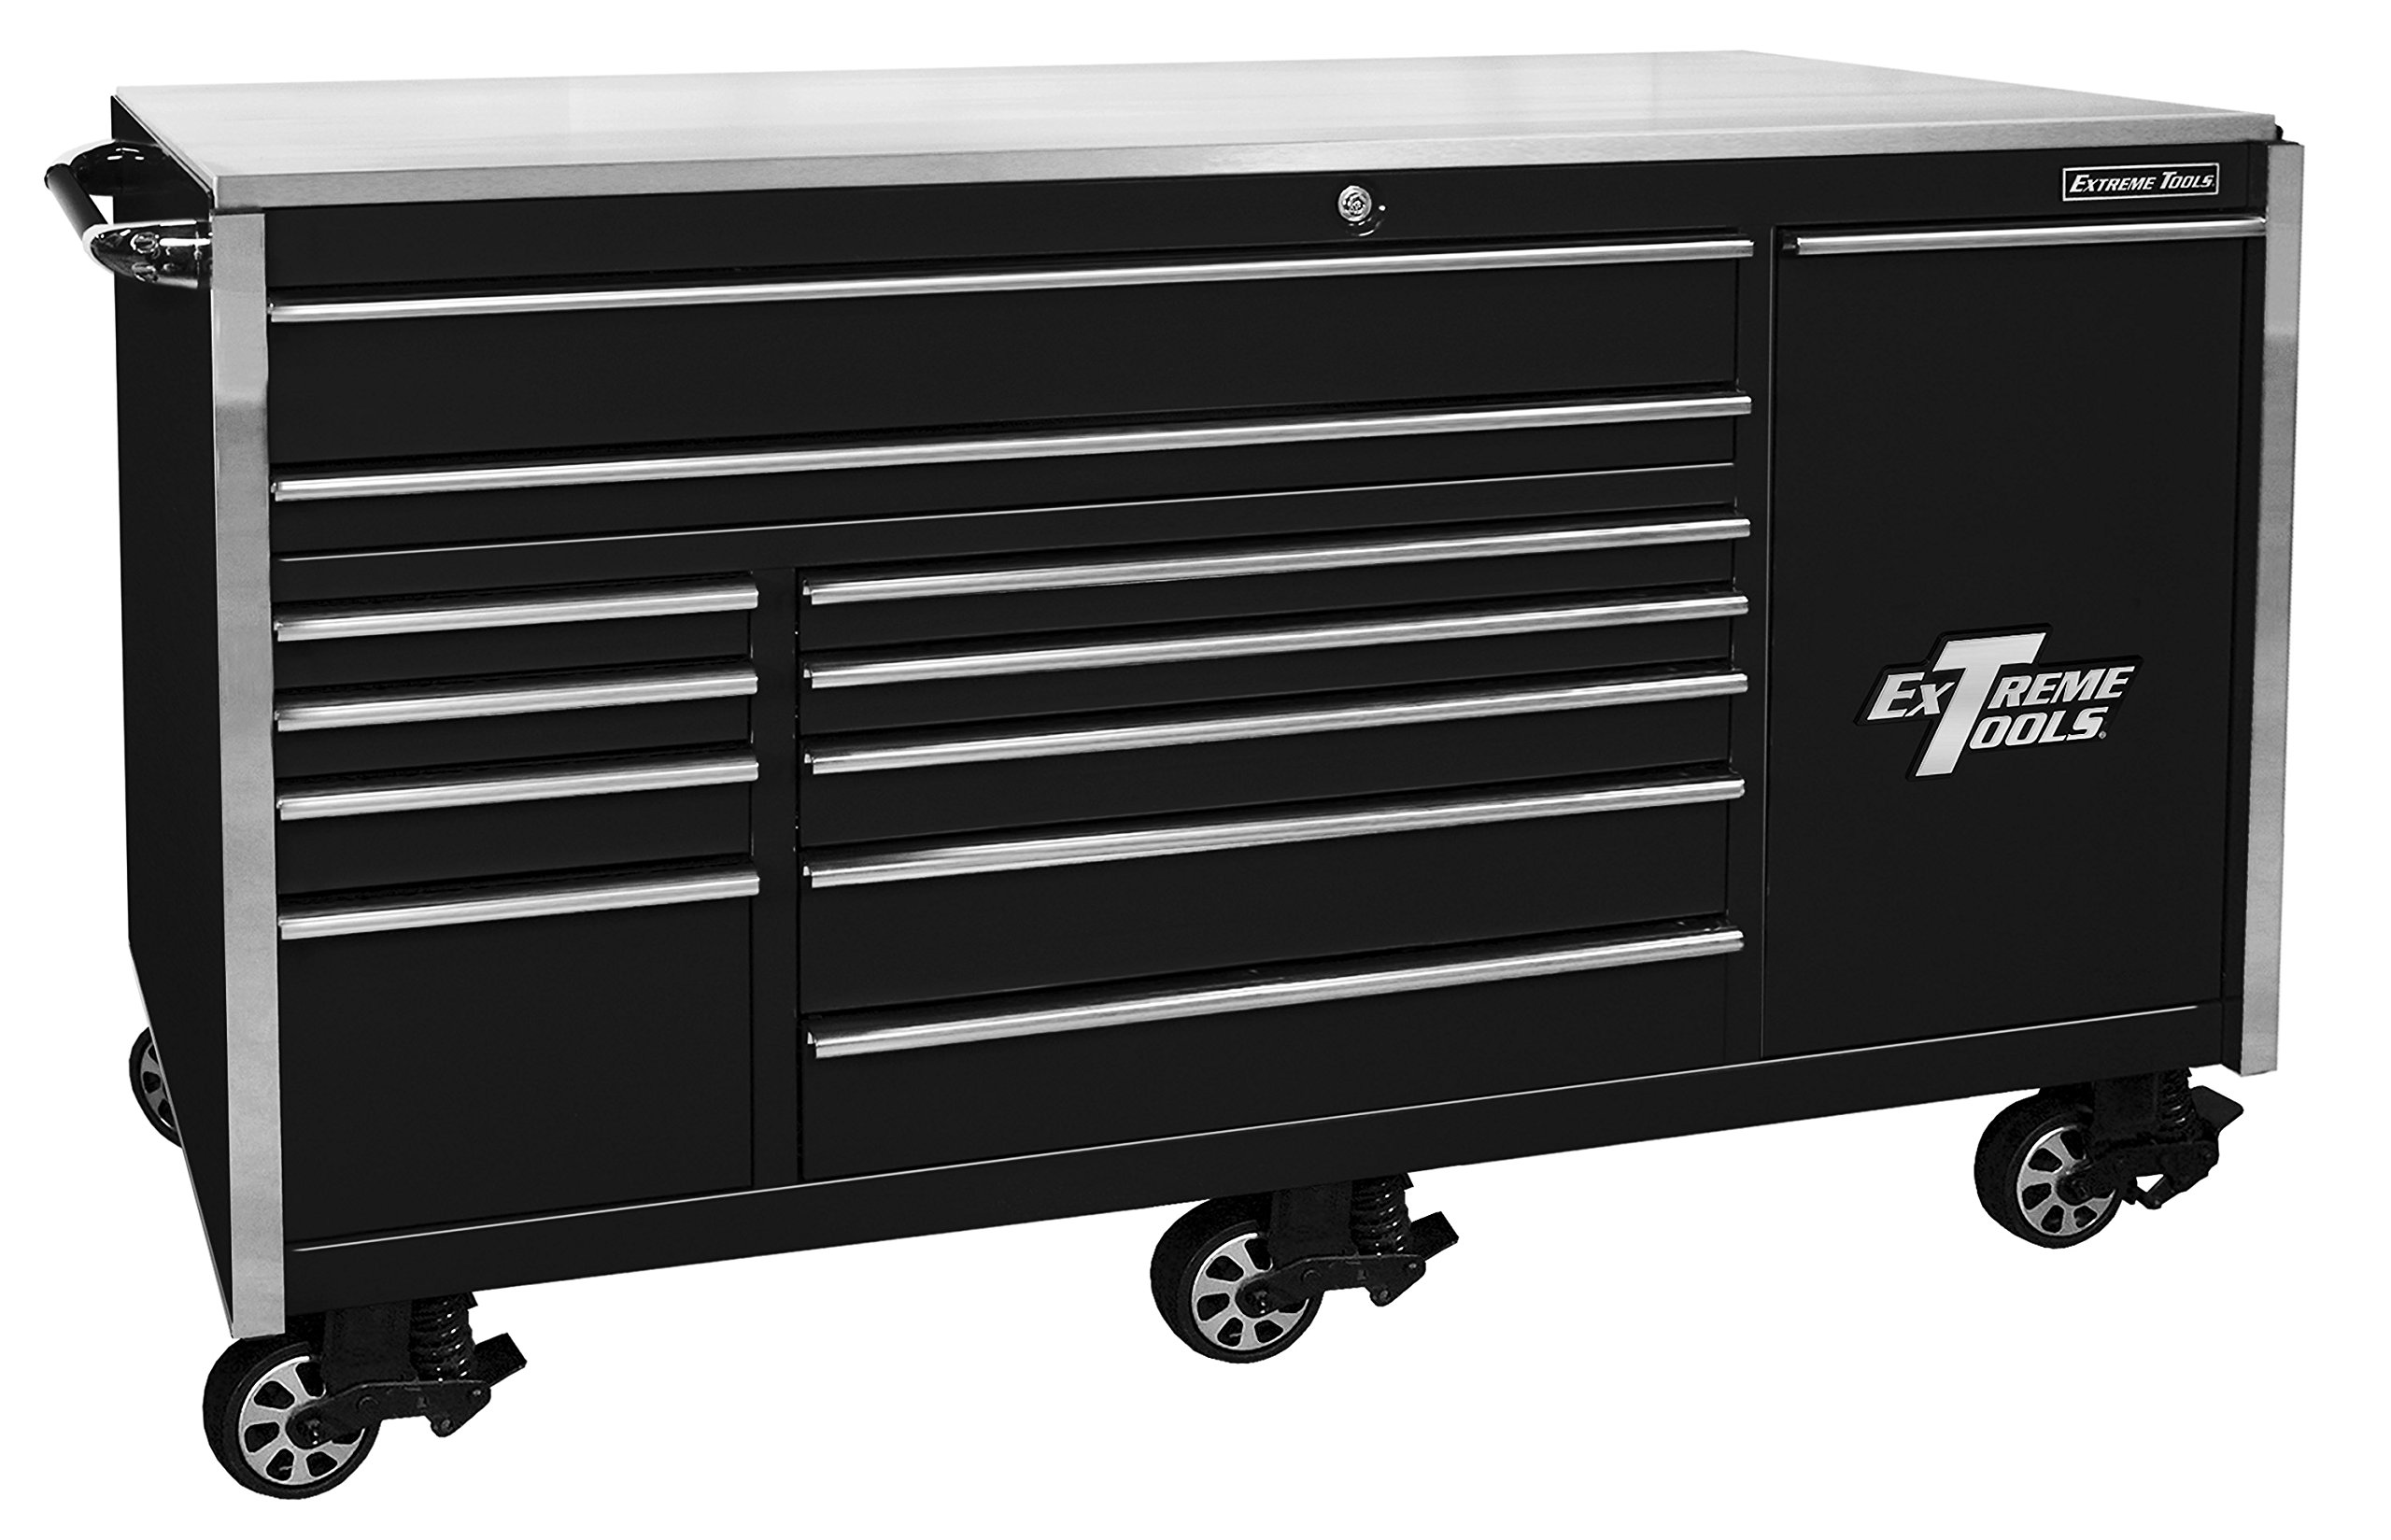 Extreme Tools EX7612RCBK 12-Drawer Roller Cabinet Vertical Drawer Power Strip with Ball Bearing Slides, 76-Inch, Black High Gloss Powder Coat